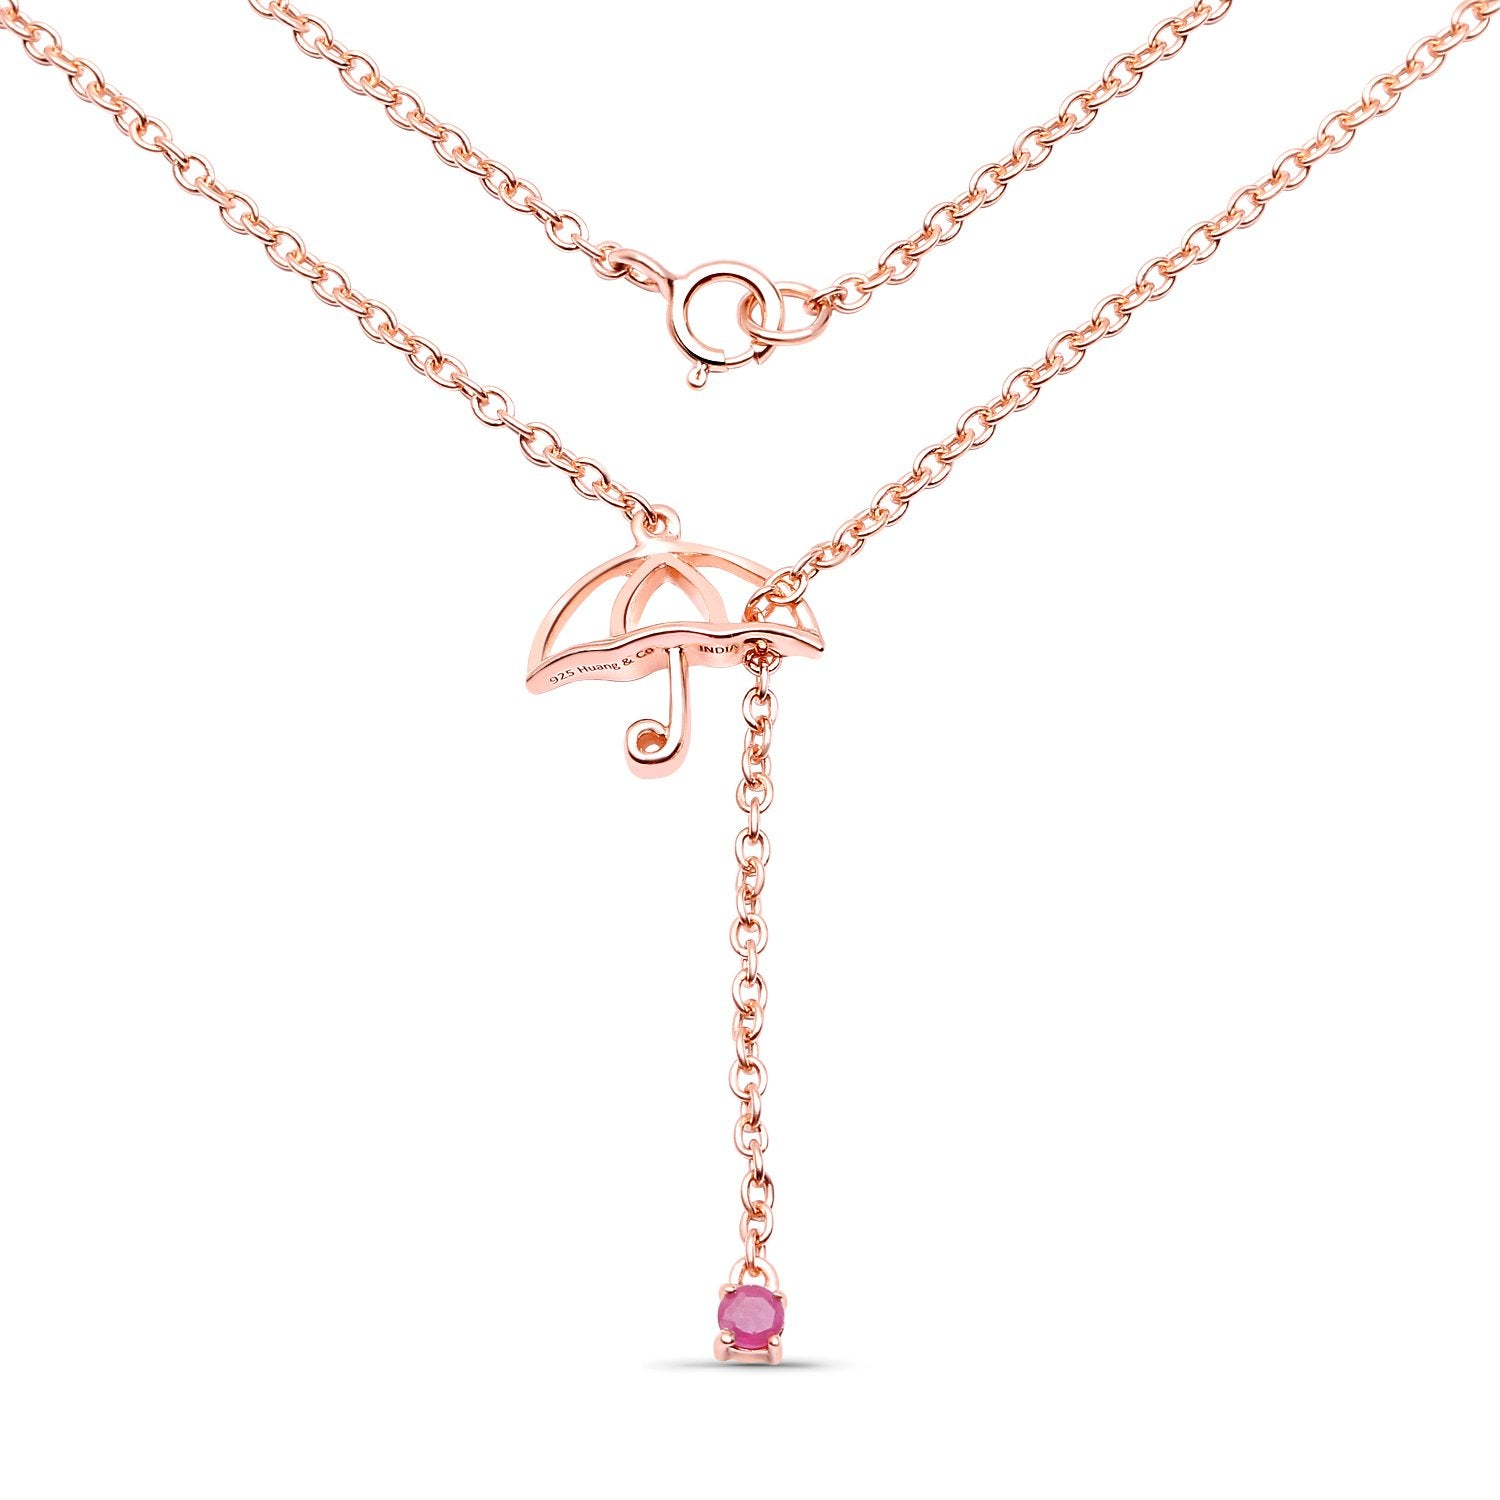 LoveHuang 0.08 Carats Genuine Ruby Umbrella Pendant Solid .925 Sterling Silver With 18KT Rose Gold Plating, 18Inch Chain